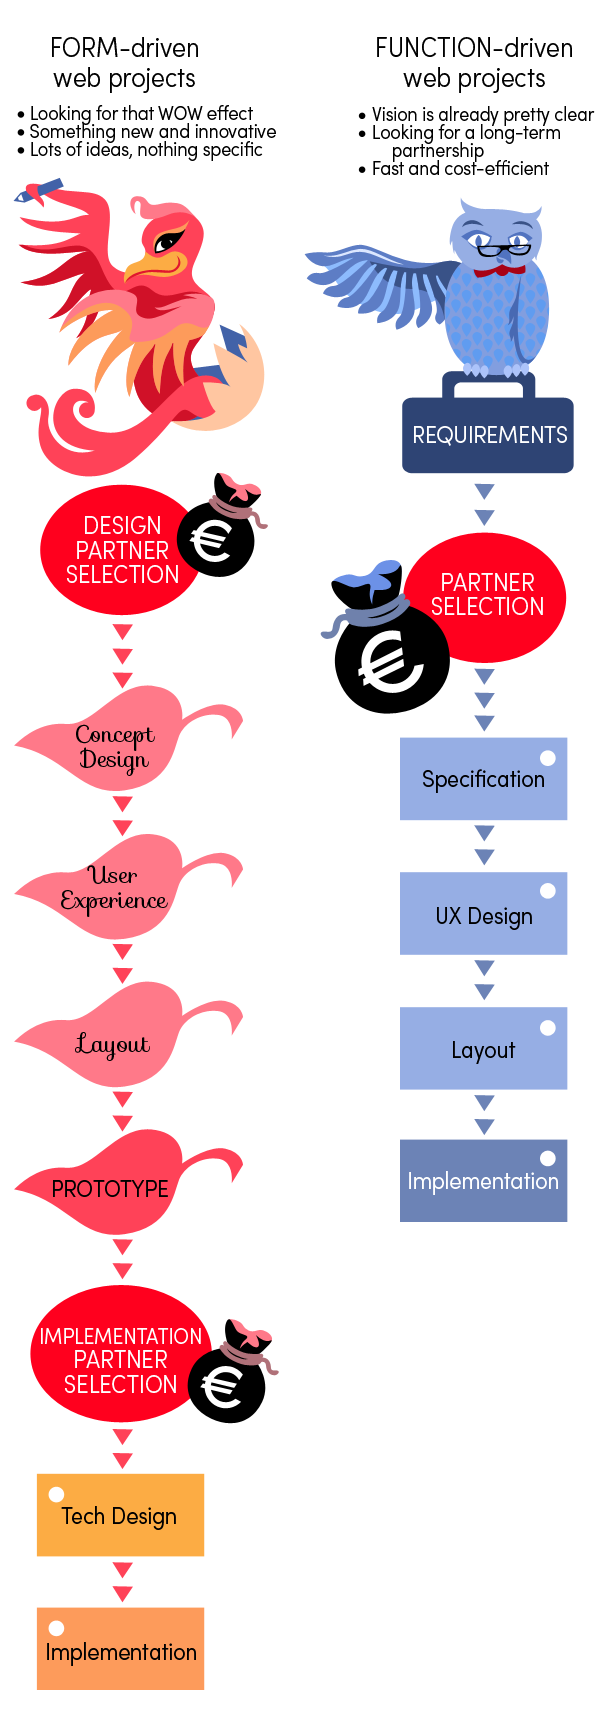 In form-driven web projects, you choose a design partner first, and then an implementation partner. In function-driven web projects, you start with your requirements, and then choose a partner for specifying, designing and implementing the web site.